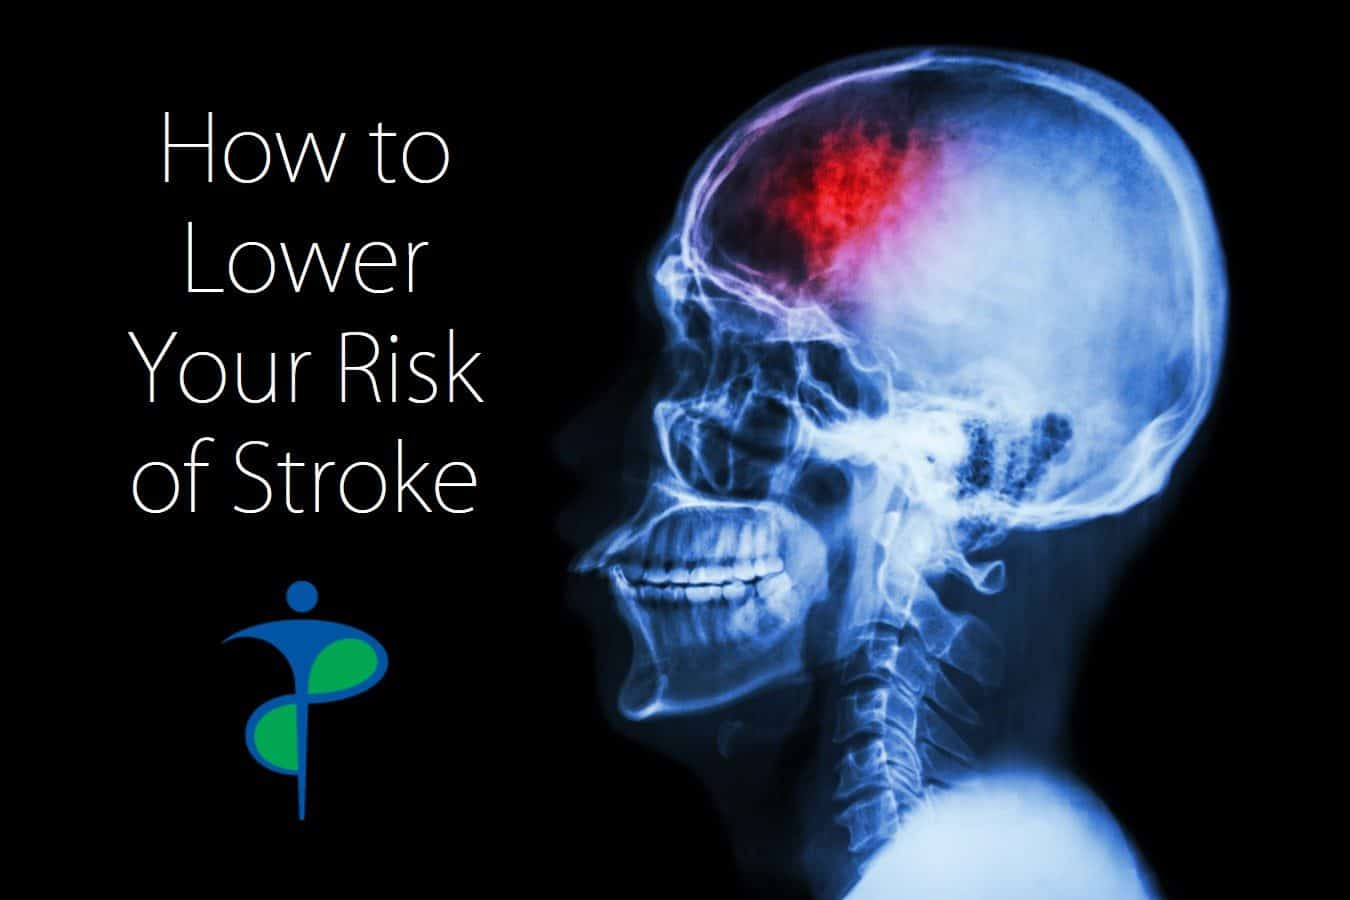 Lower Stroke Risk